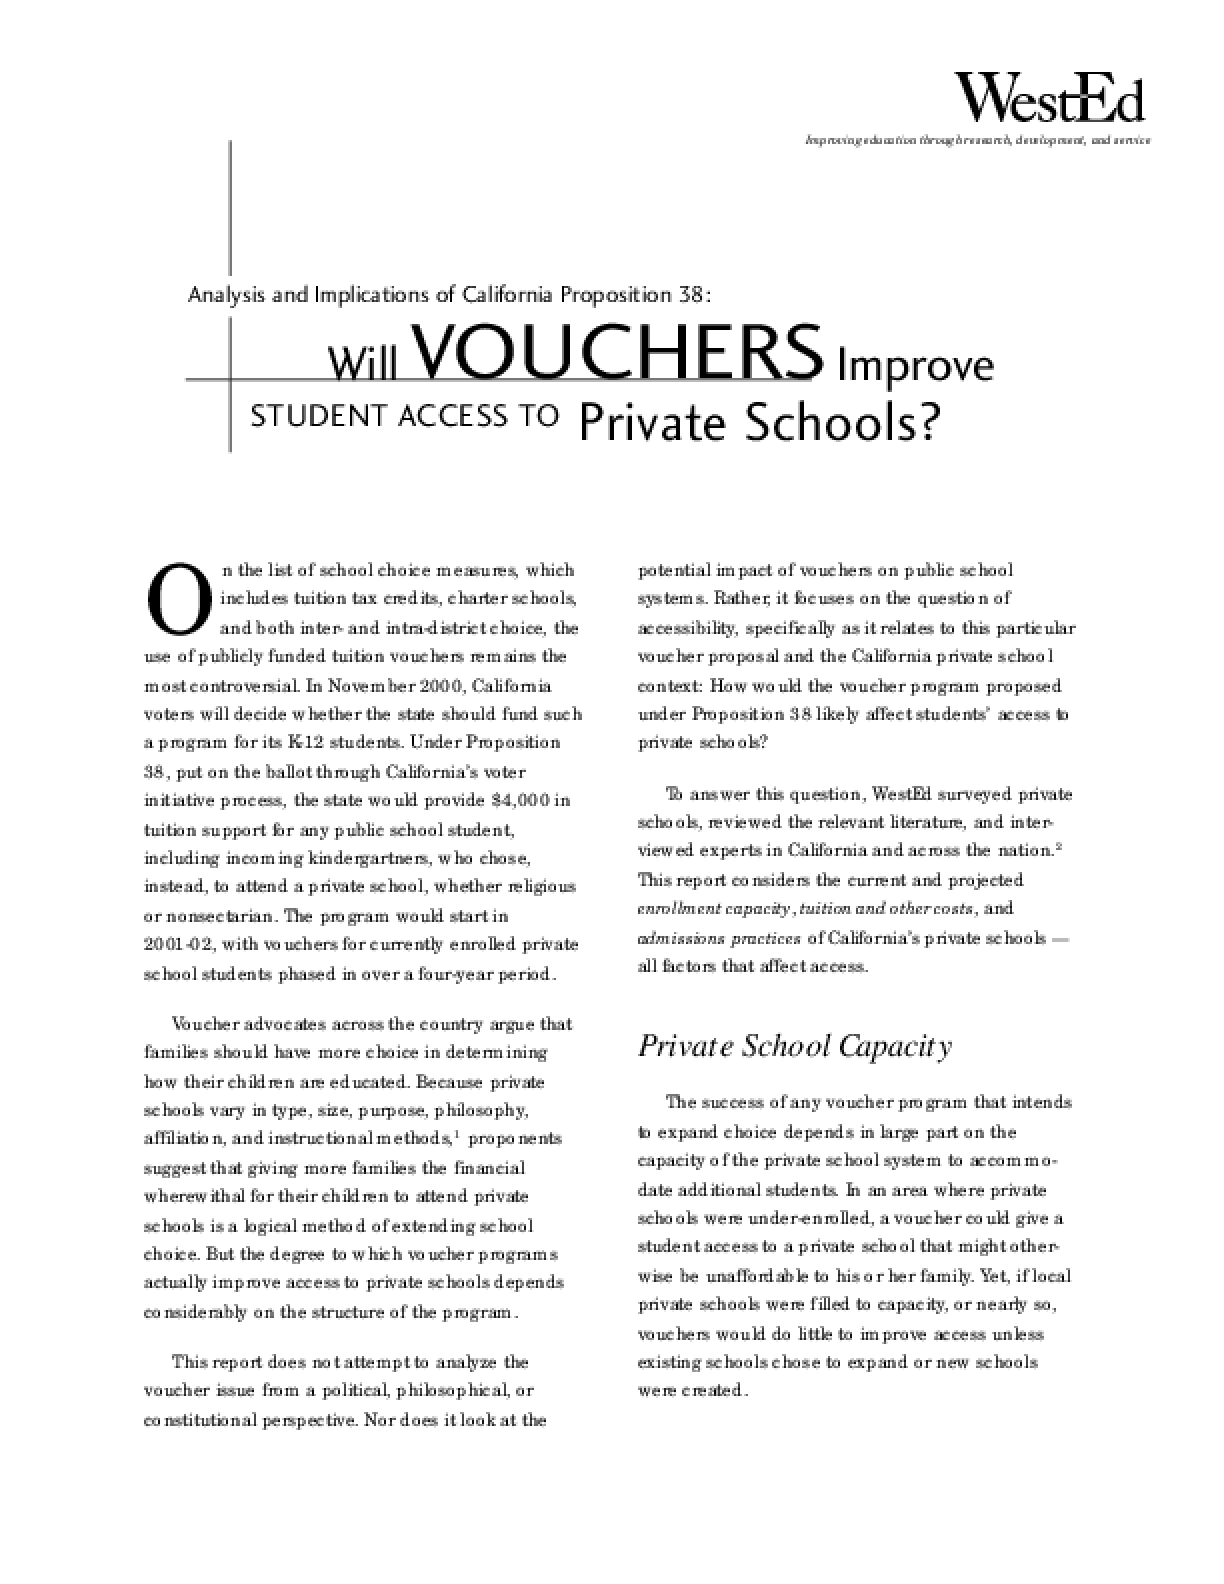 Analysis and Implications of Proposition 38: Will Vouchers Improve Student Access to Private Schools?